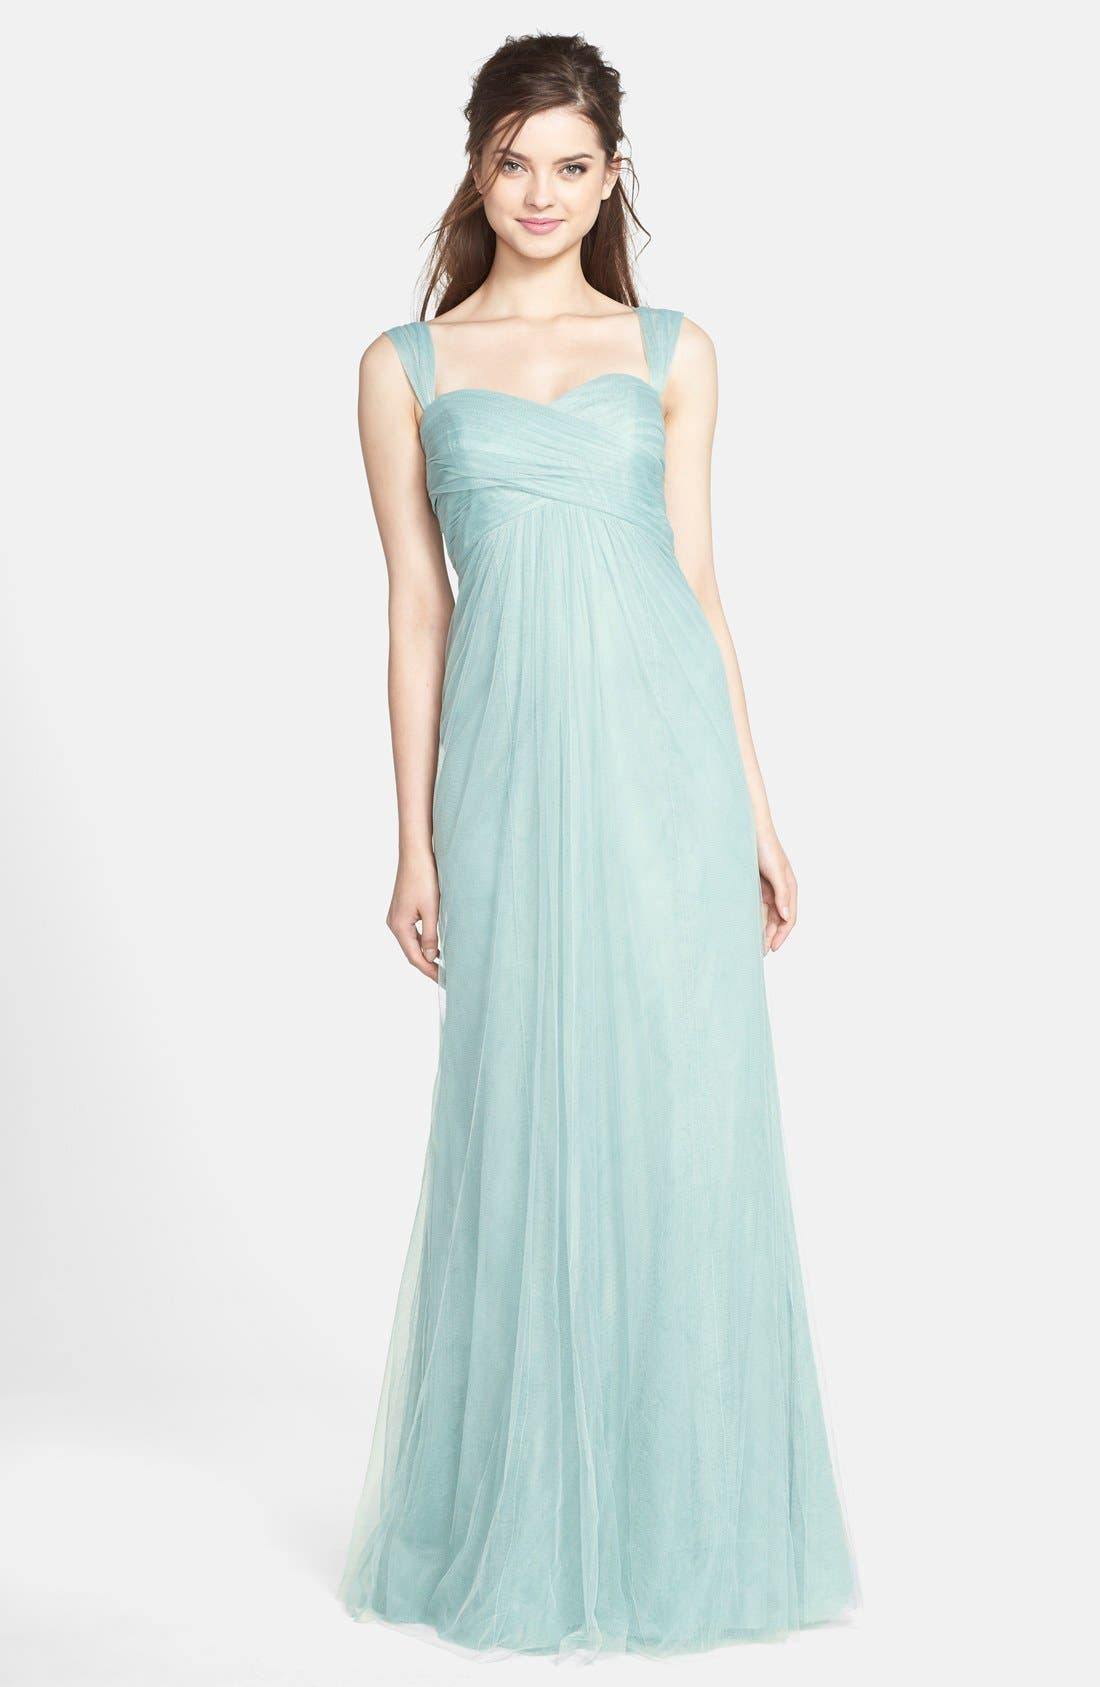 Willow Convertible Tulle Gown,                             Main thumbnail 1, color,                             455